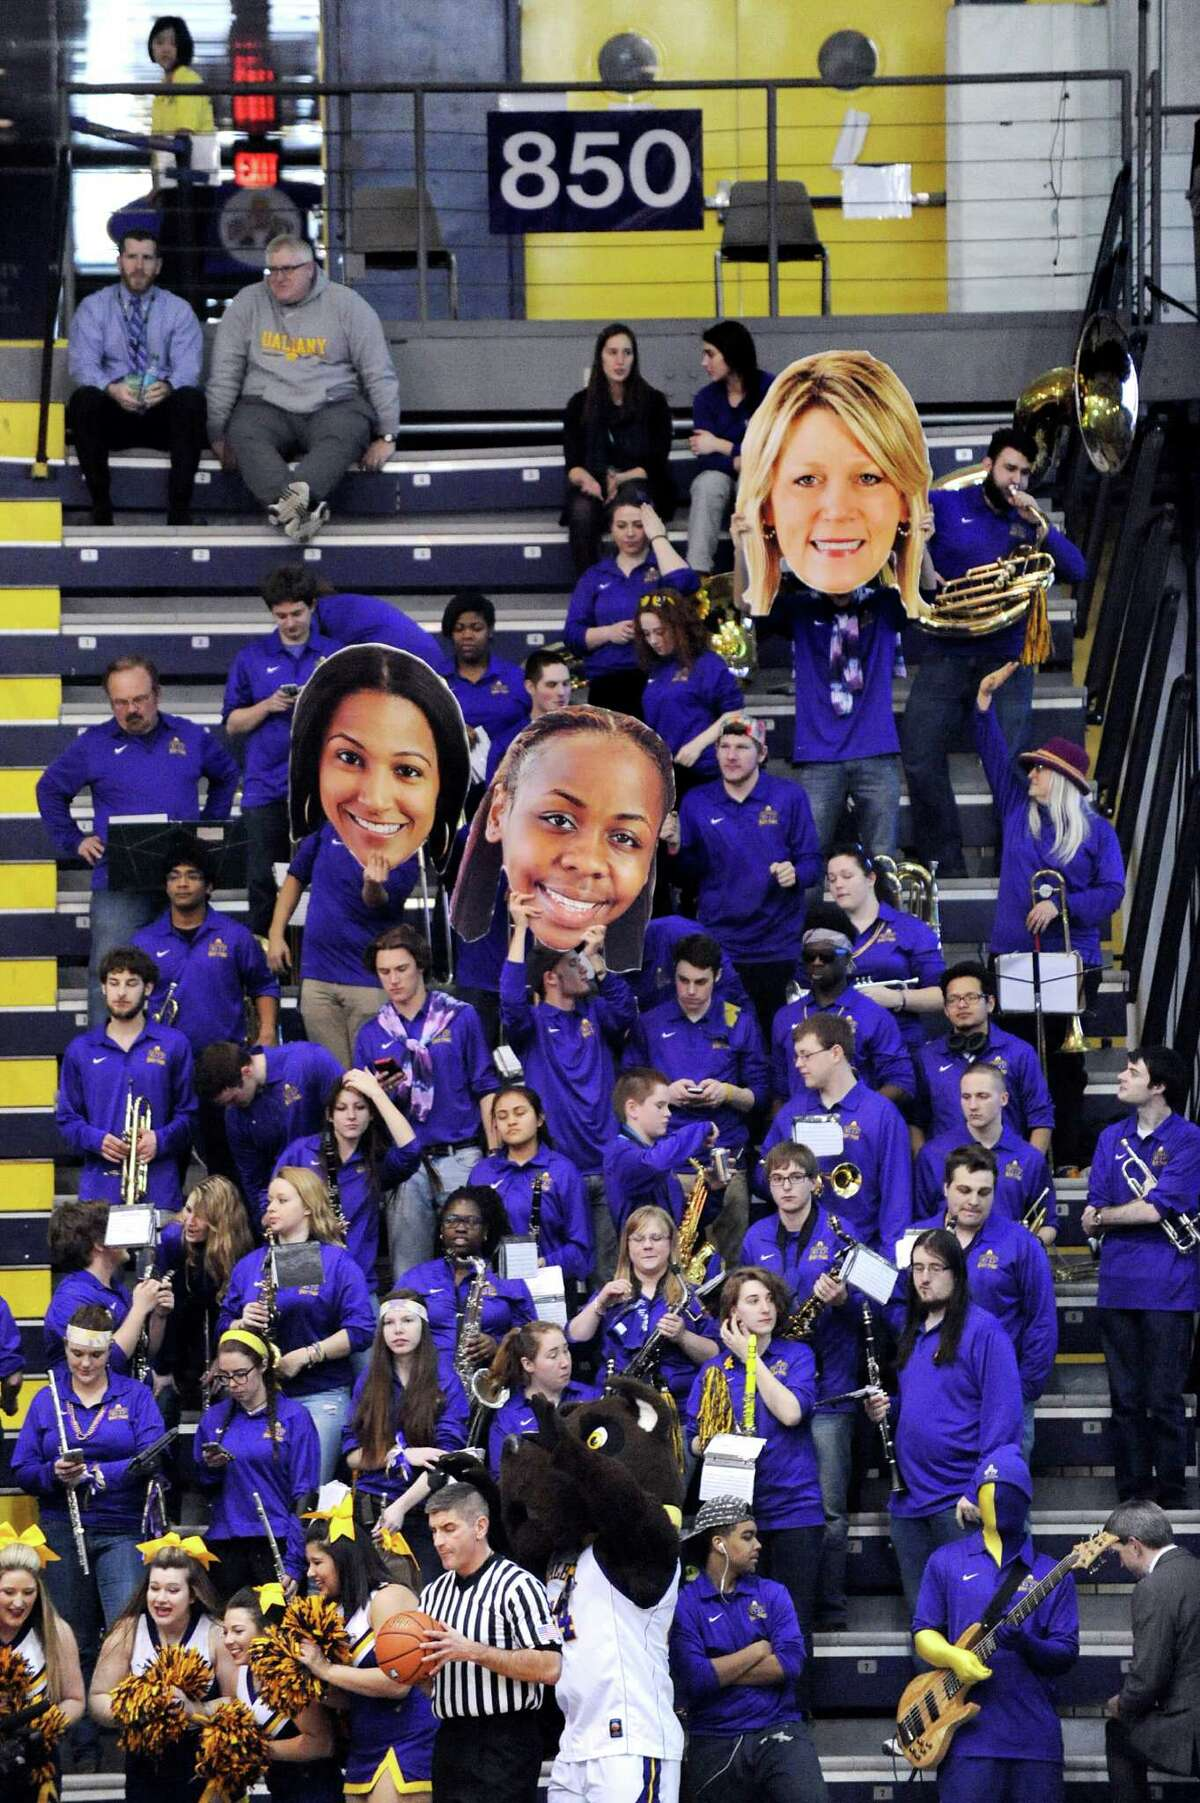 UAlbany's pep band shows their support during their America East Championship game against Hartford on Friday, March 13, 2015, at UAlbany in Albany, N.Y. (Cindy Schultz / Times Union)